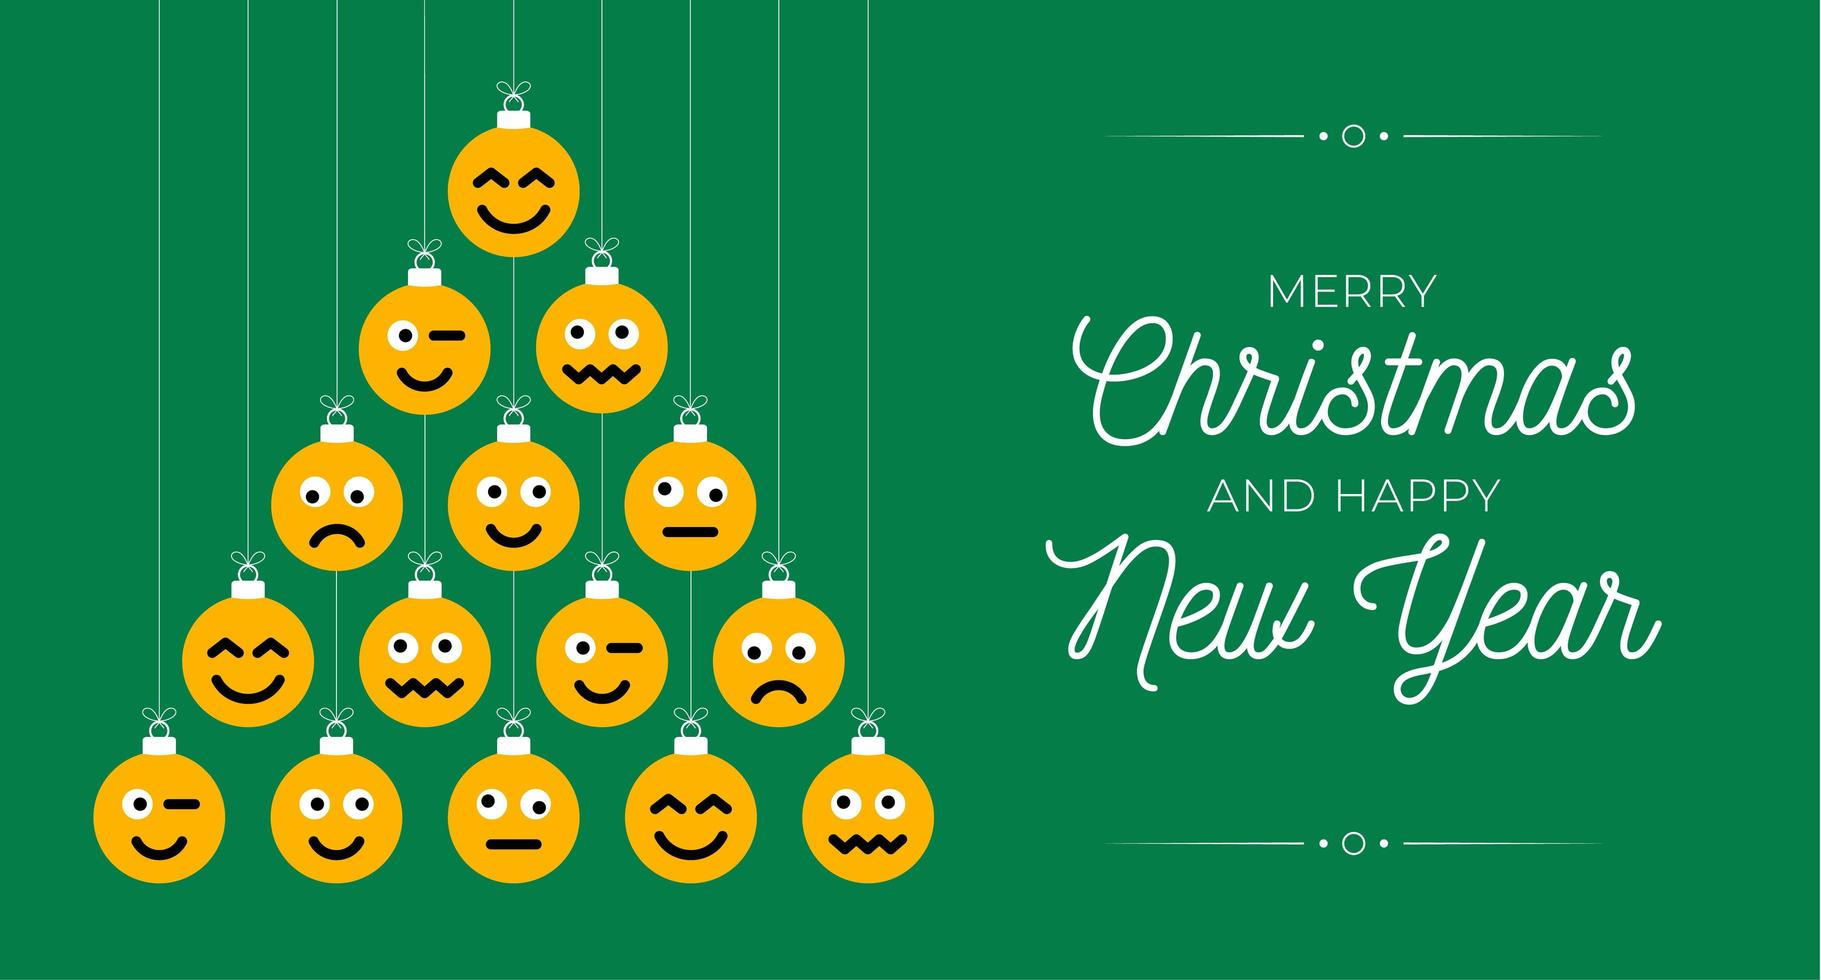 Creative Christmas tree made of face emoji ornaments vector